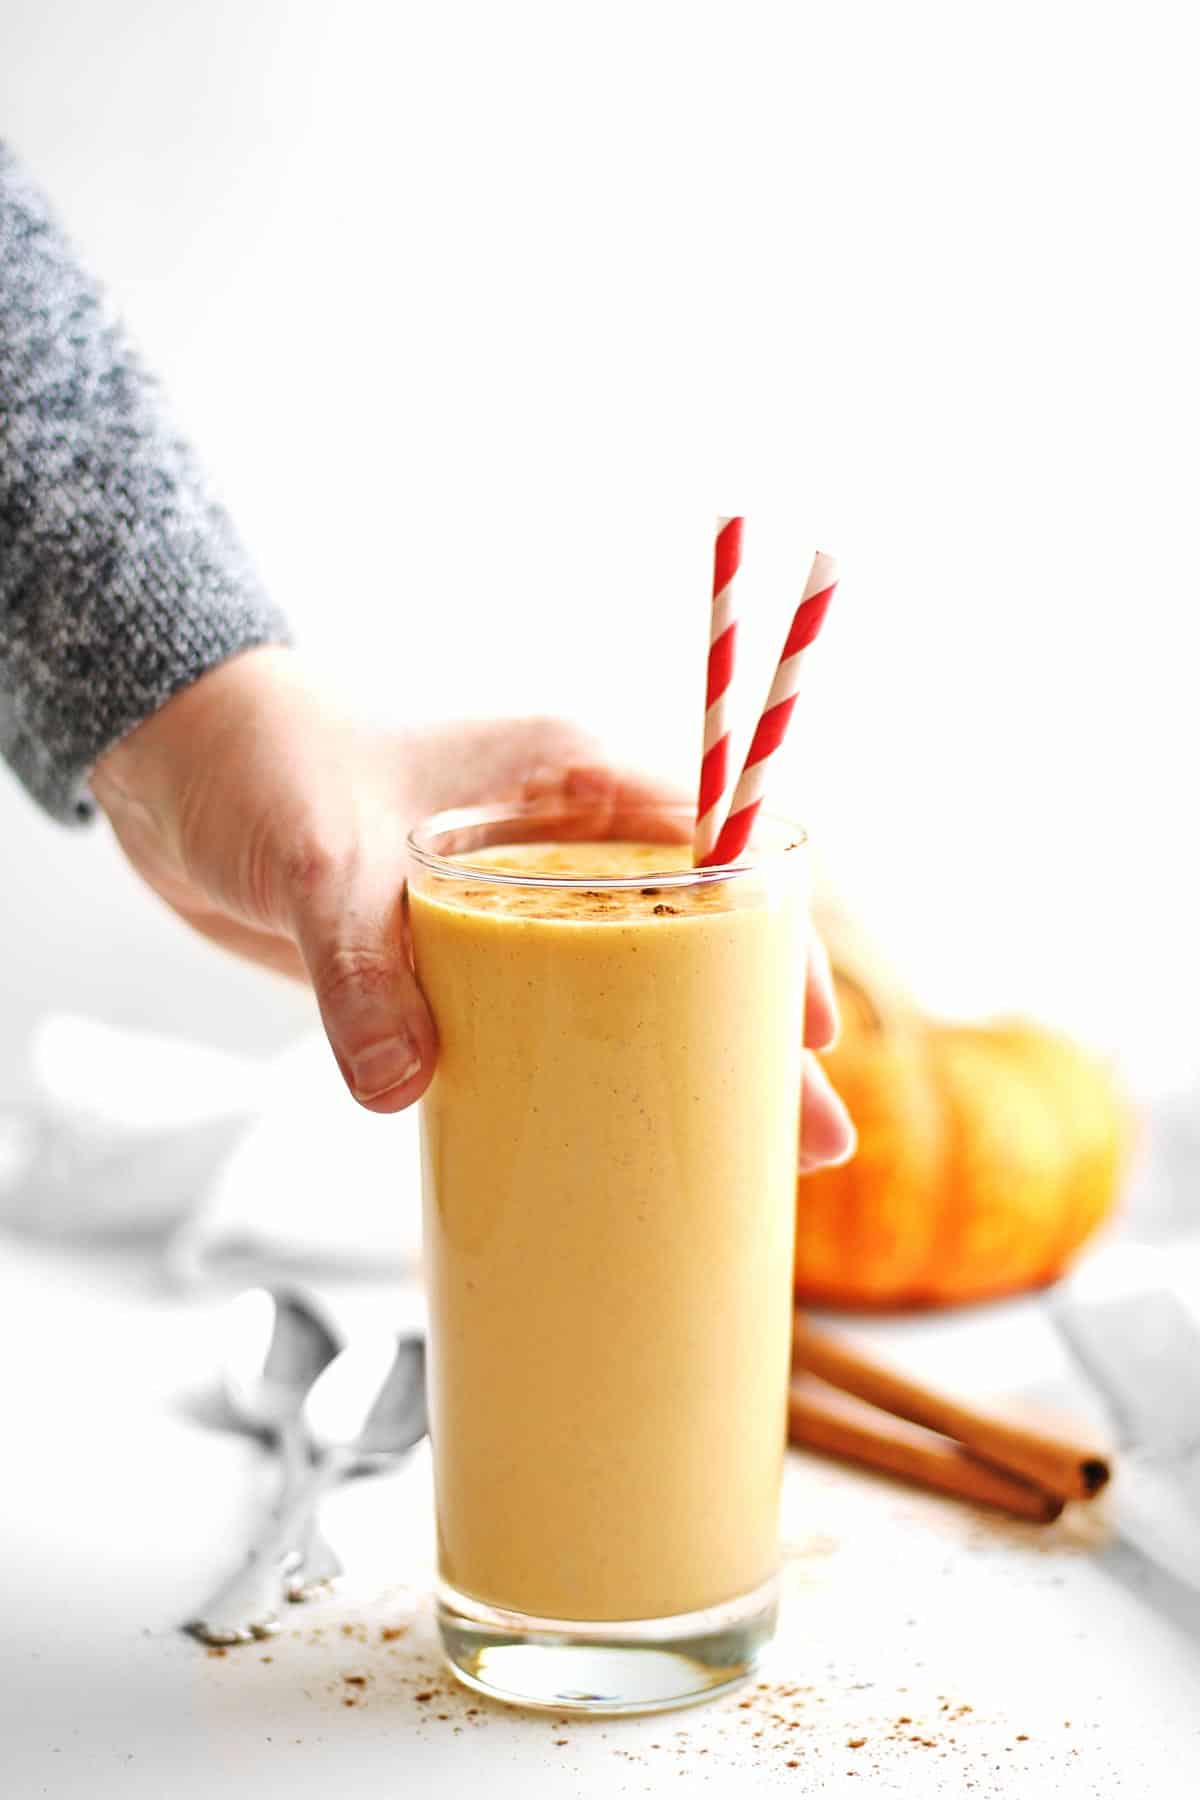 Pumpkin smoothie with hand picking it up